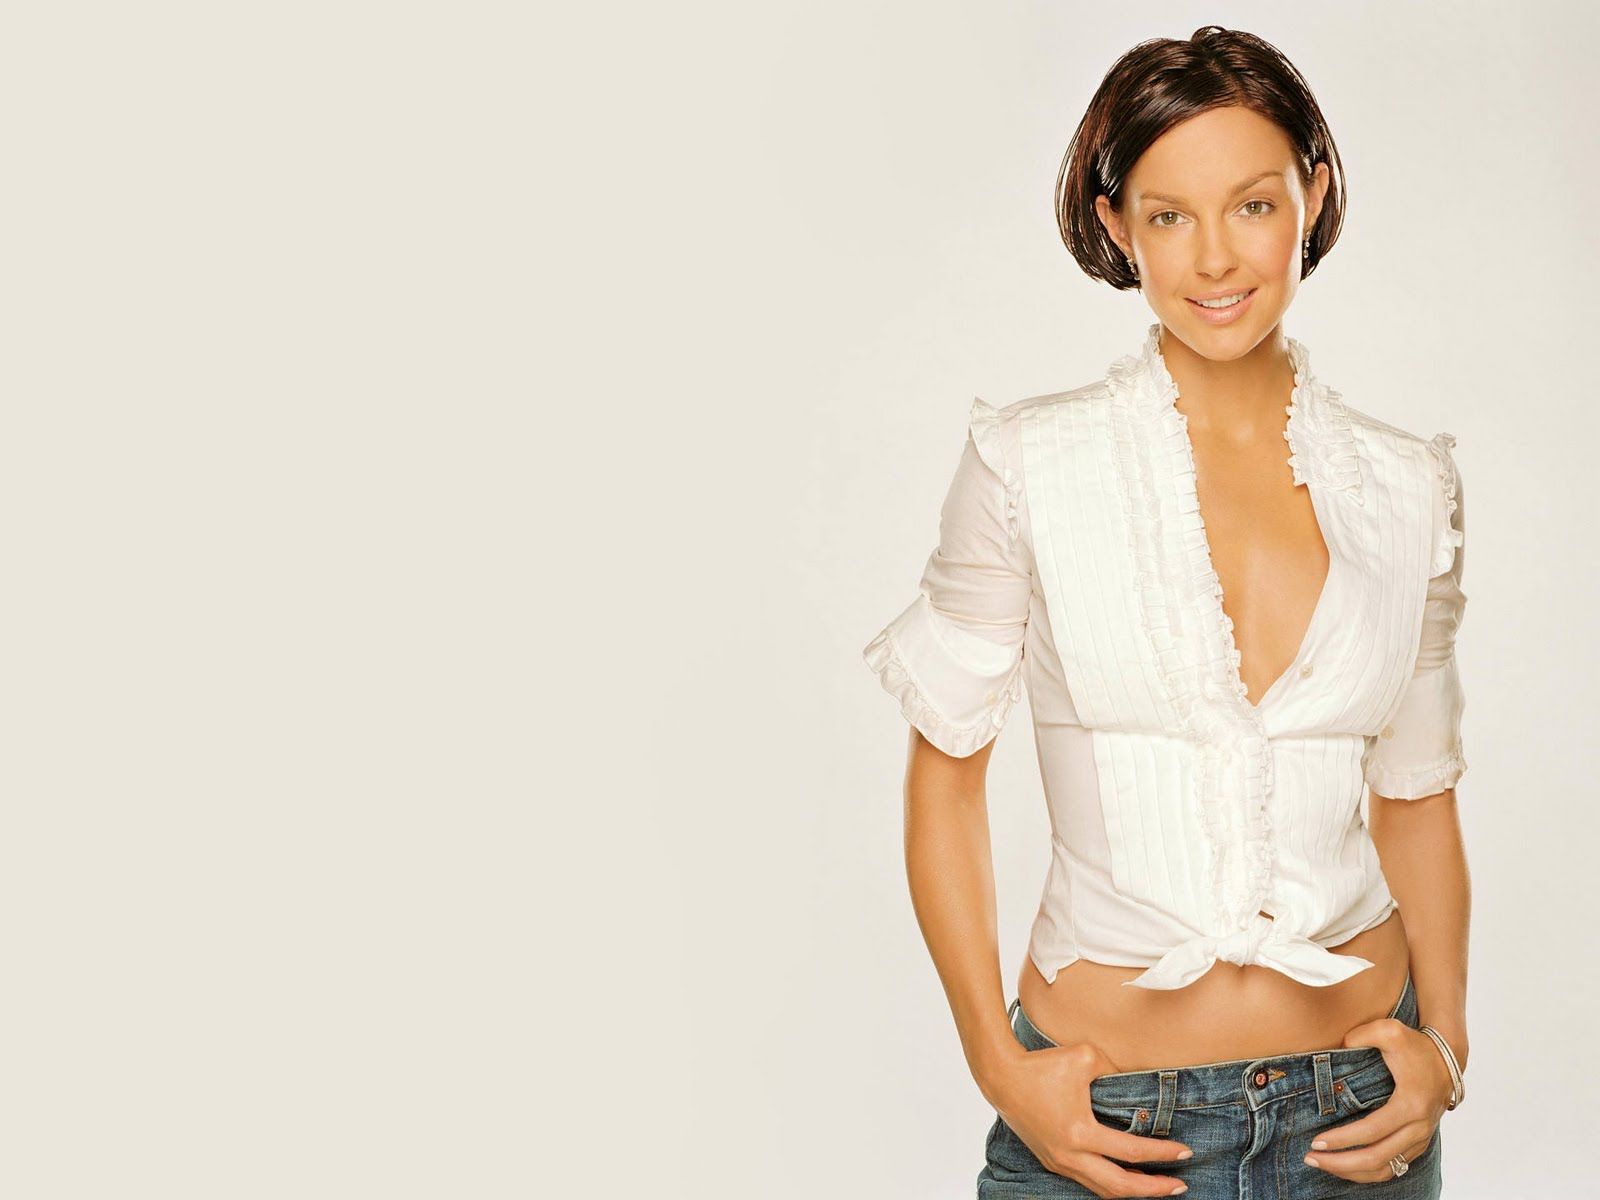 Ashley Judd Hot Pictures, Photo Gallery & Wallpapers